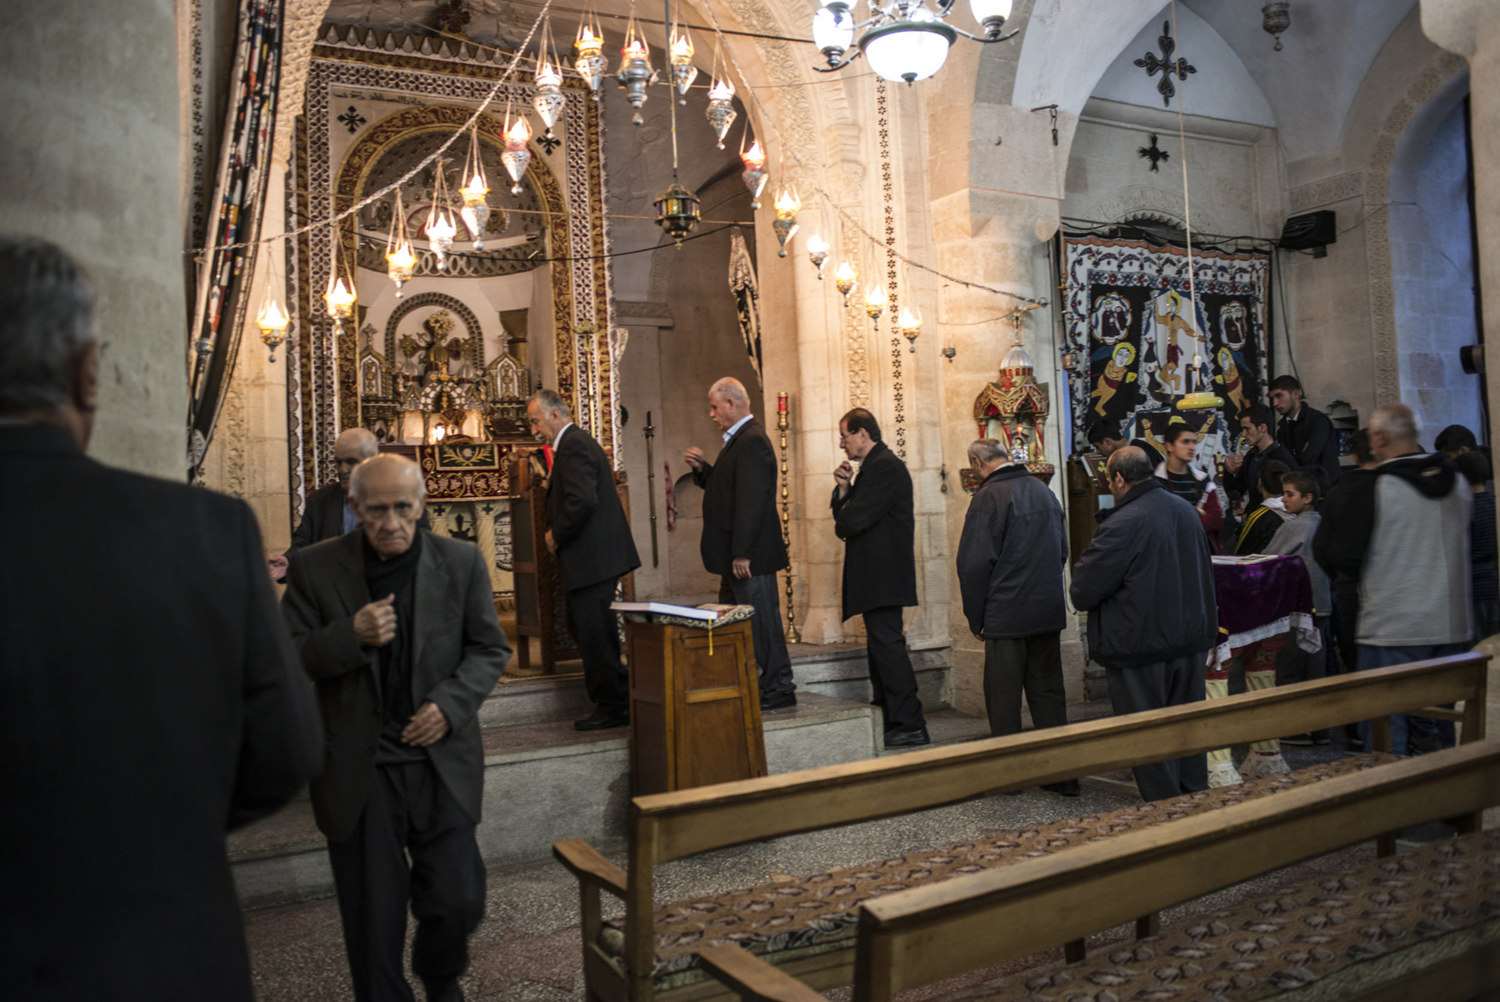 A church service at Mor Barsaumo church on October 31st, 2014.